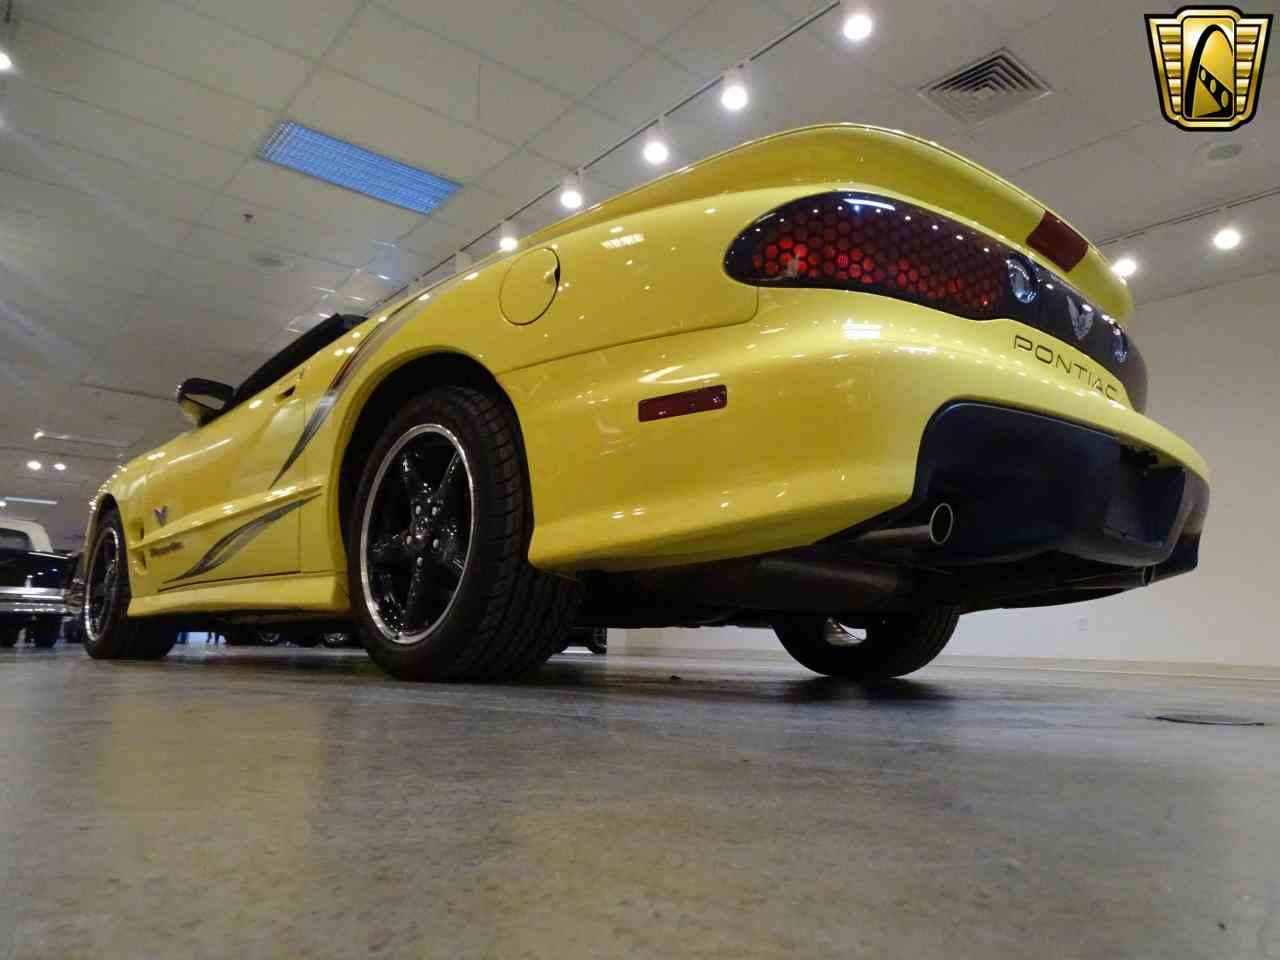 Large Picture of 2002 Pontiac Firebird - $32,995.00 Offered by Gateway Classic Cars - St. Louis - KE64